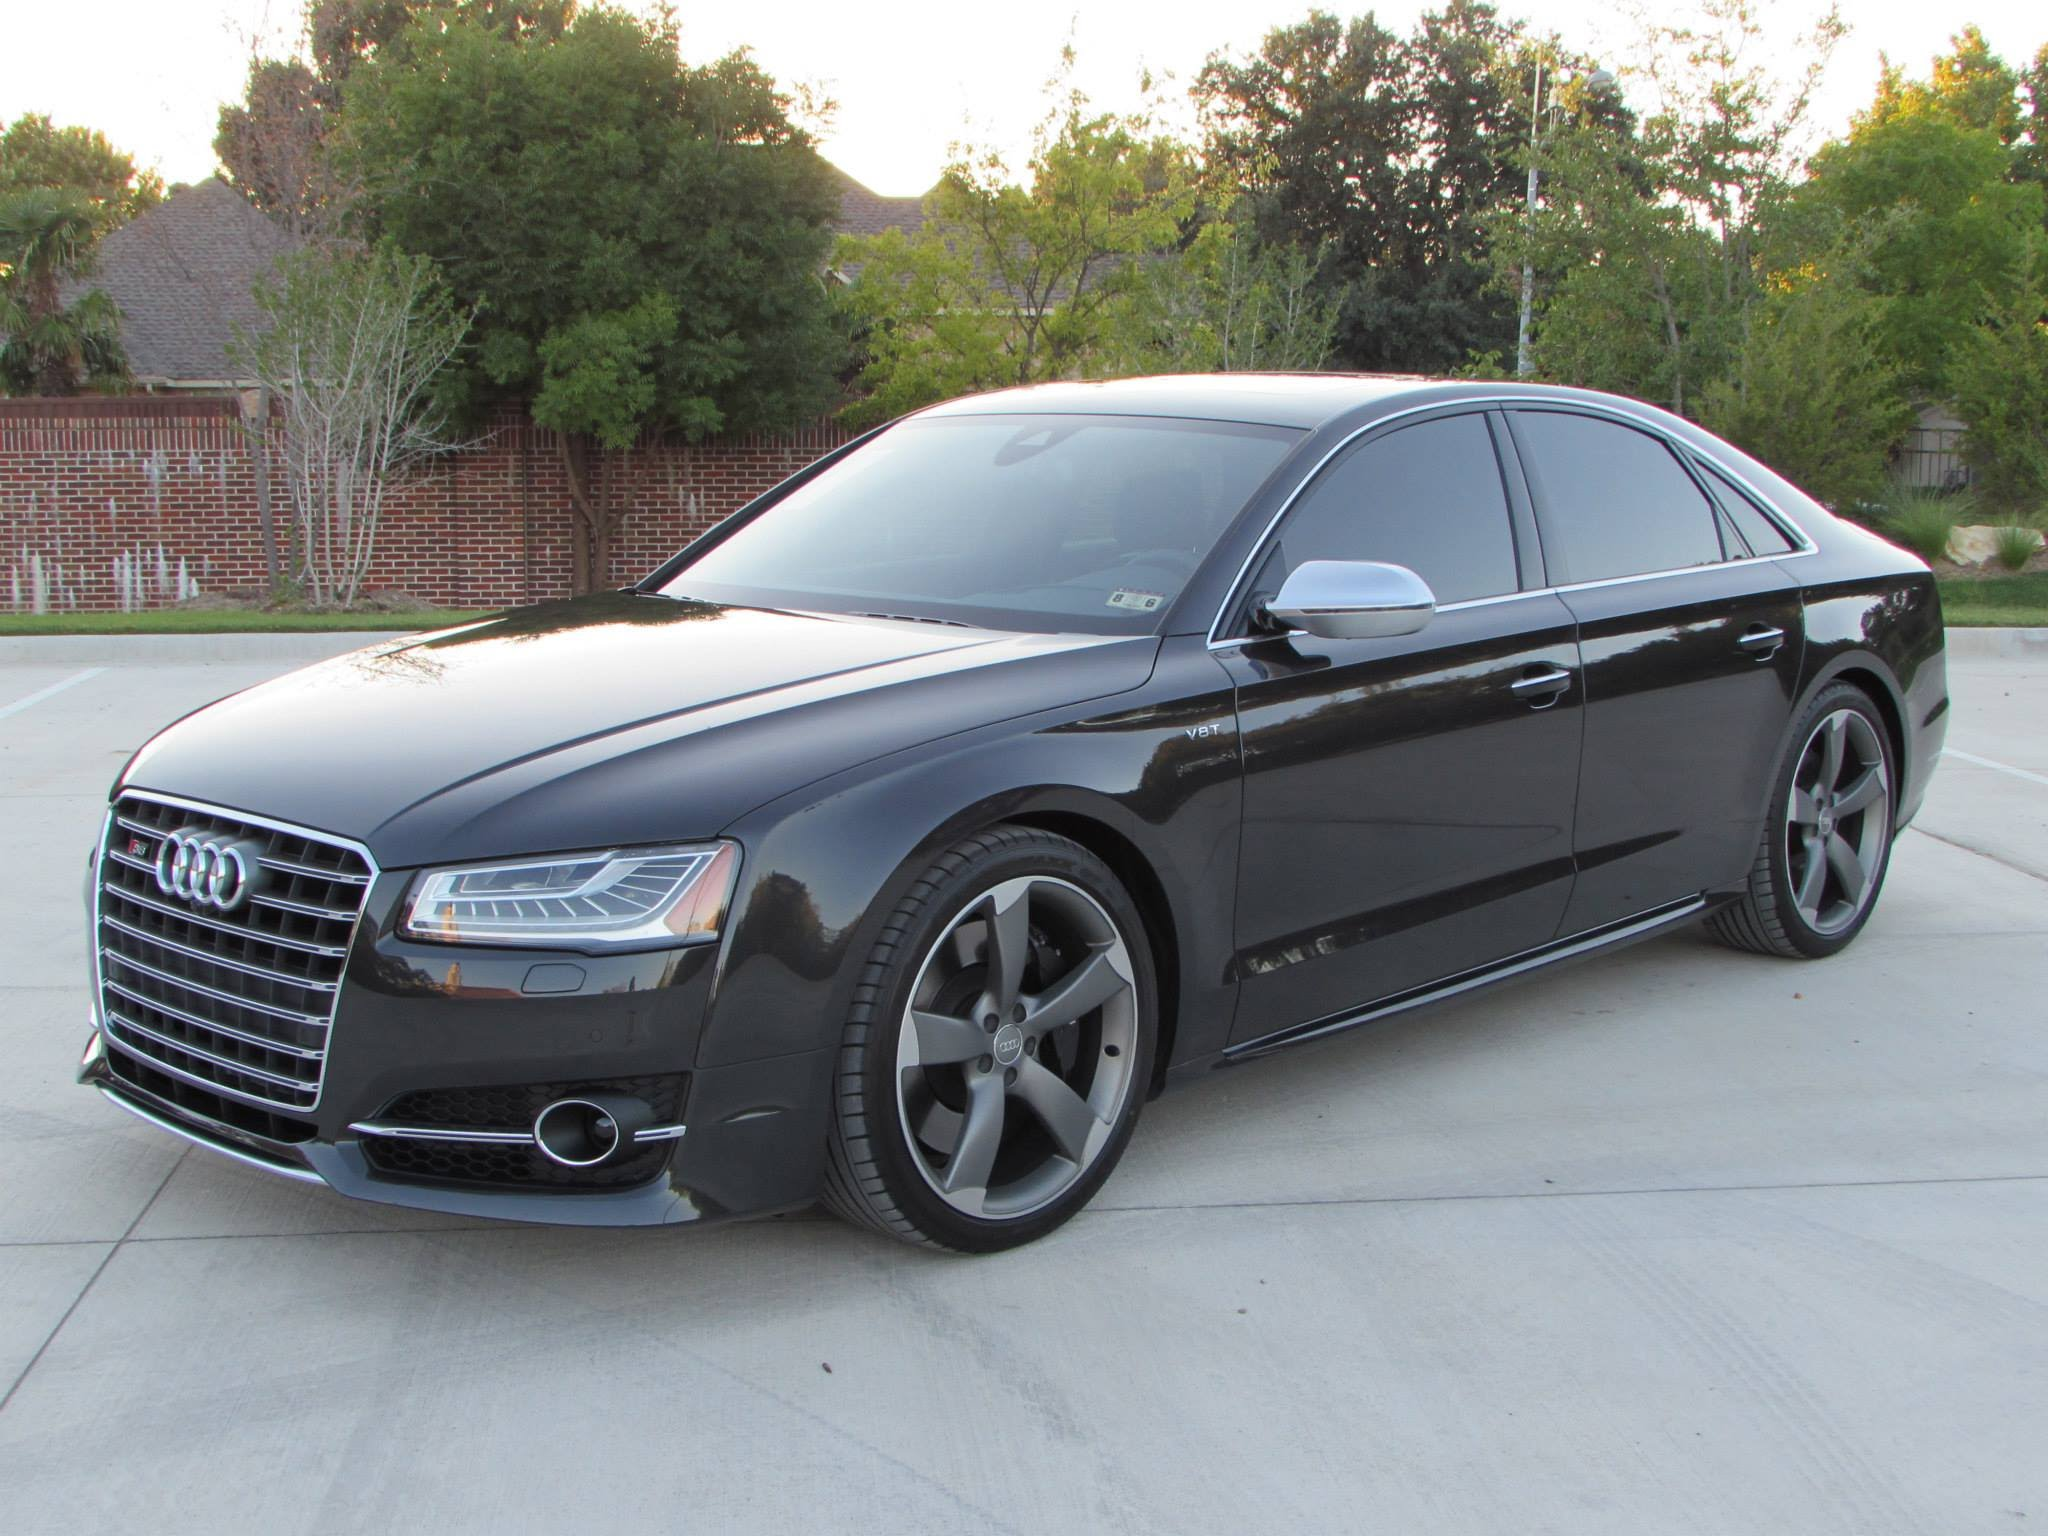 audi s8 pictures #1